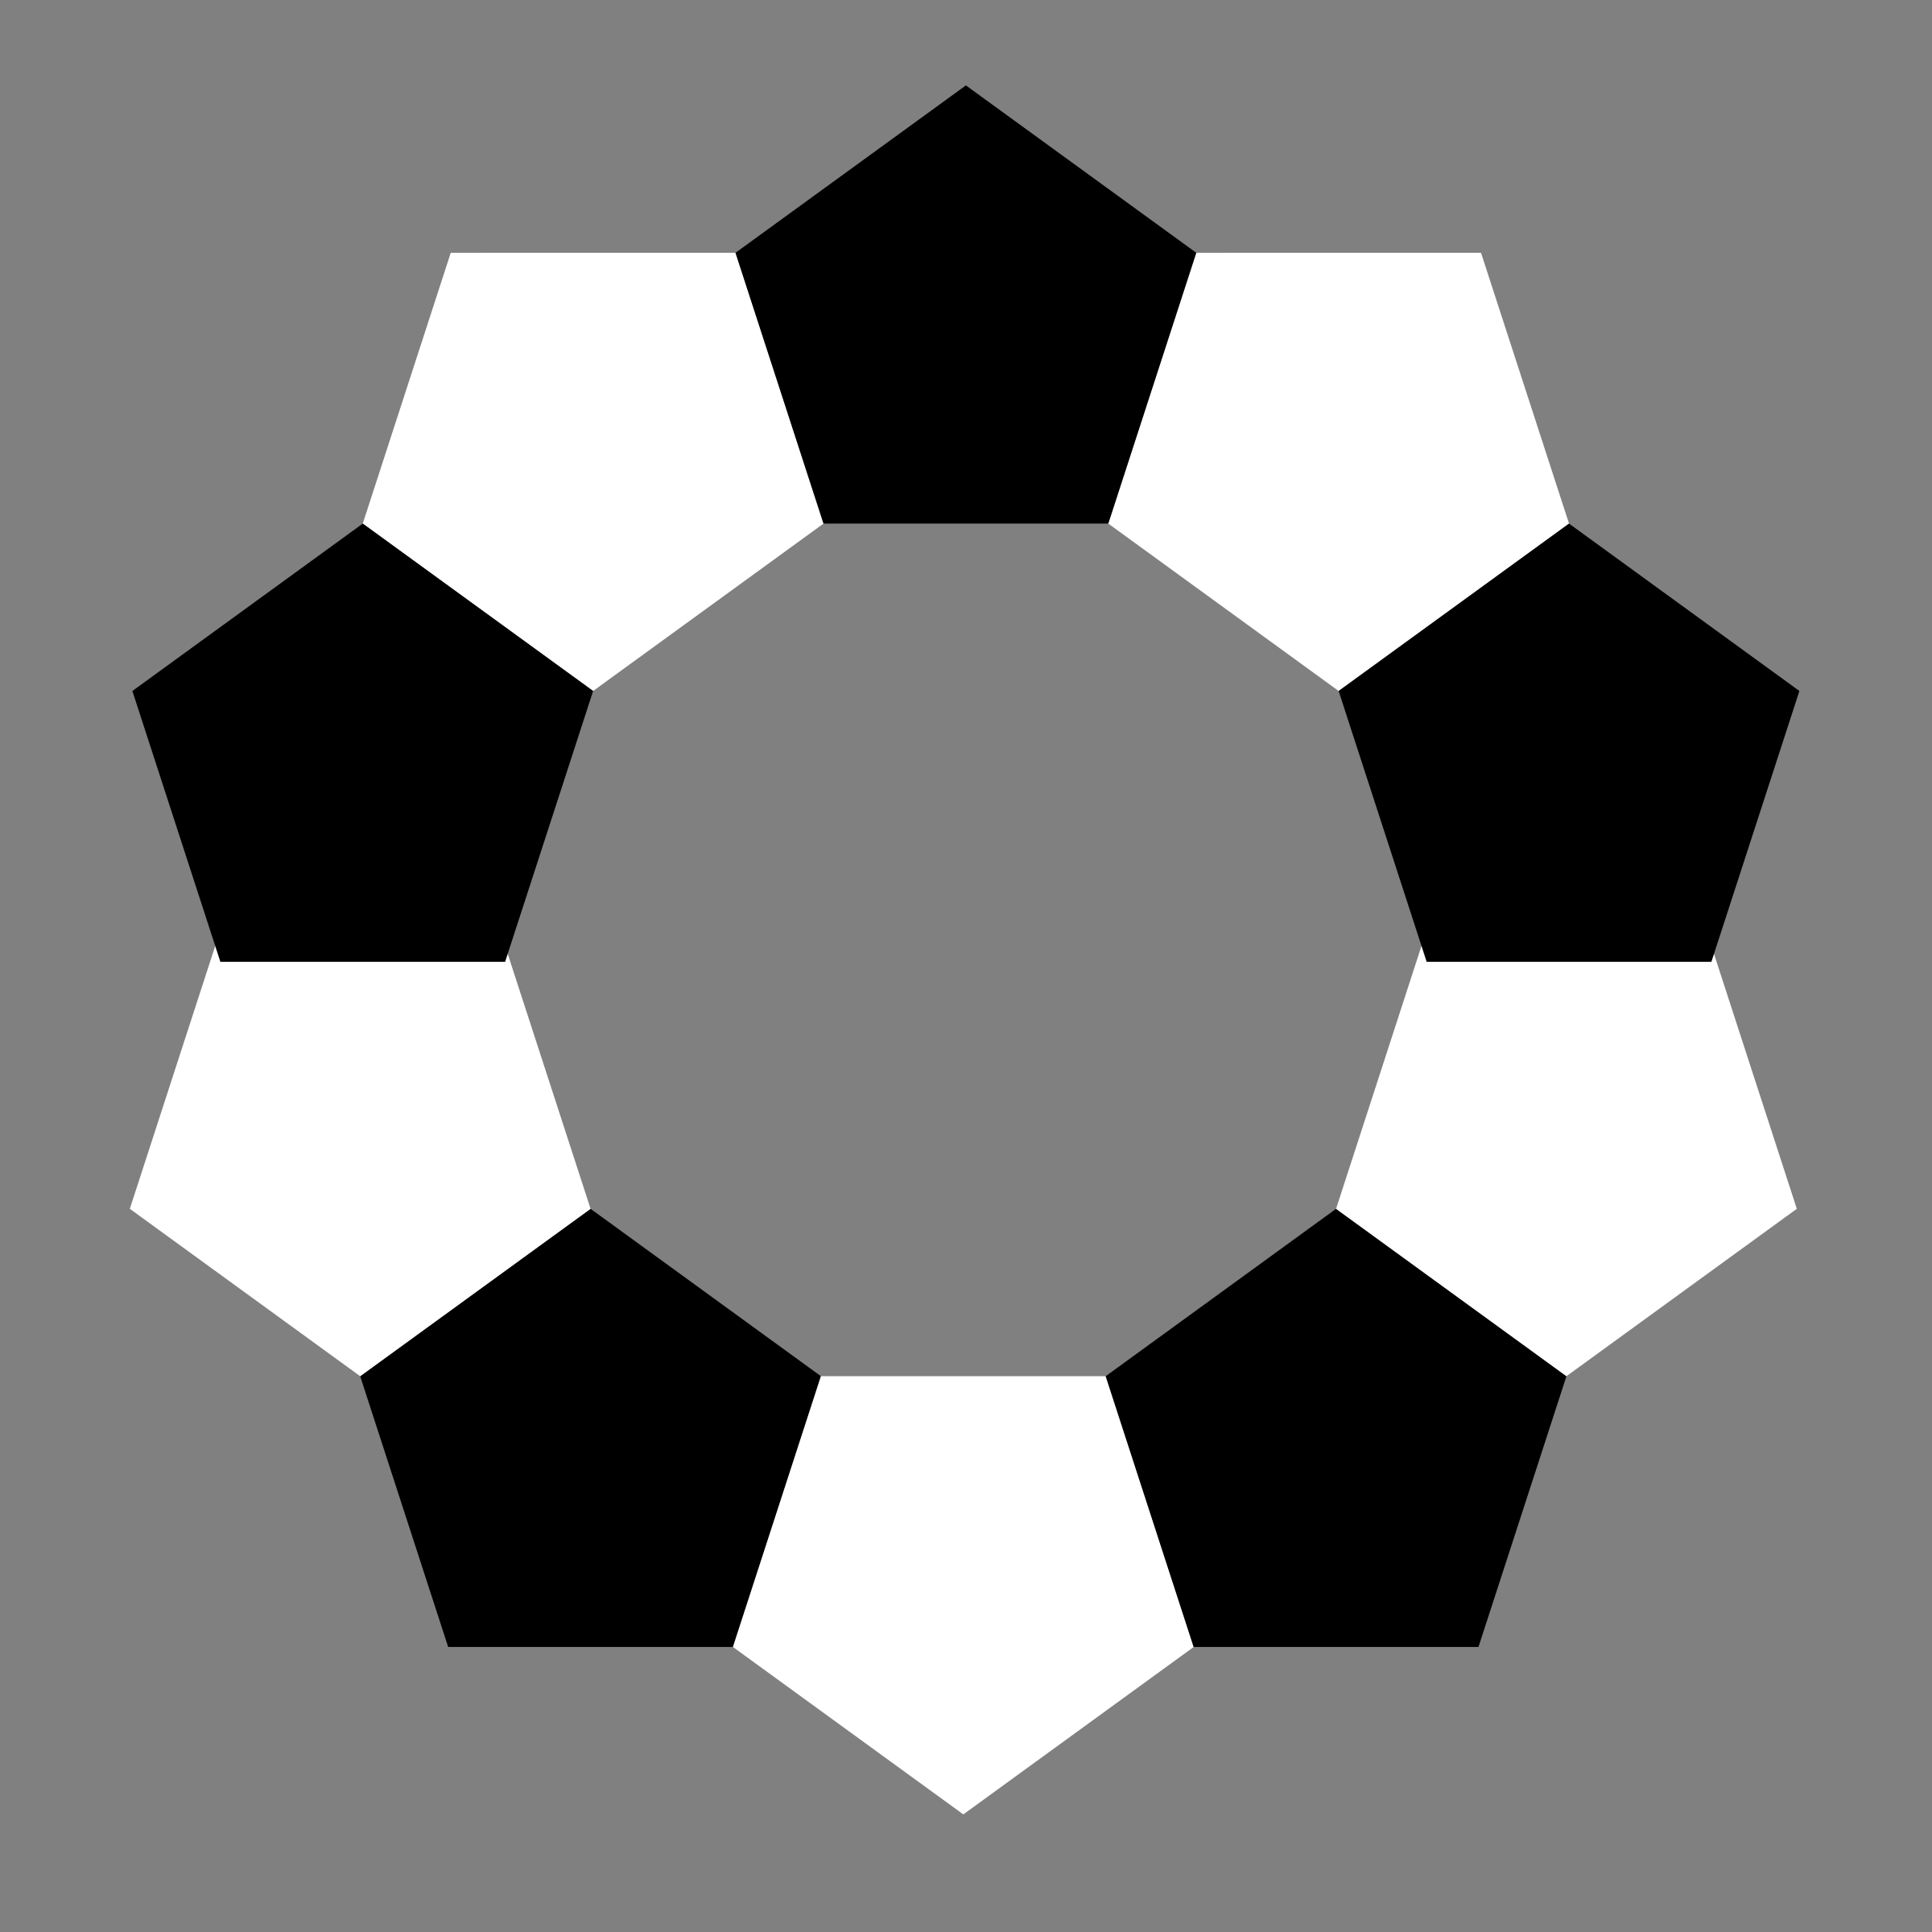 pentagons-decagram-plain by 10binary